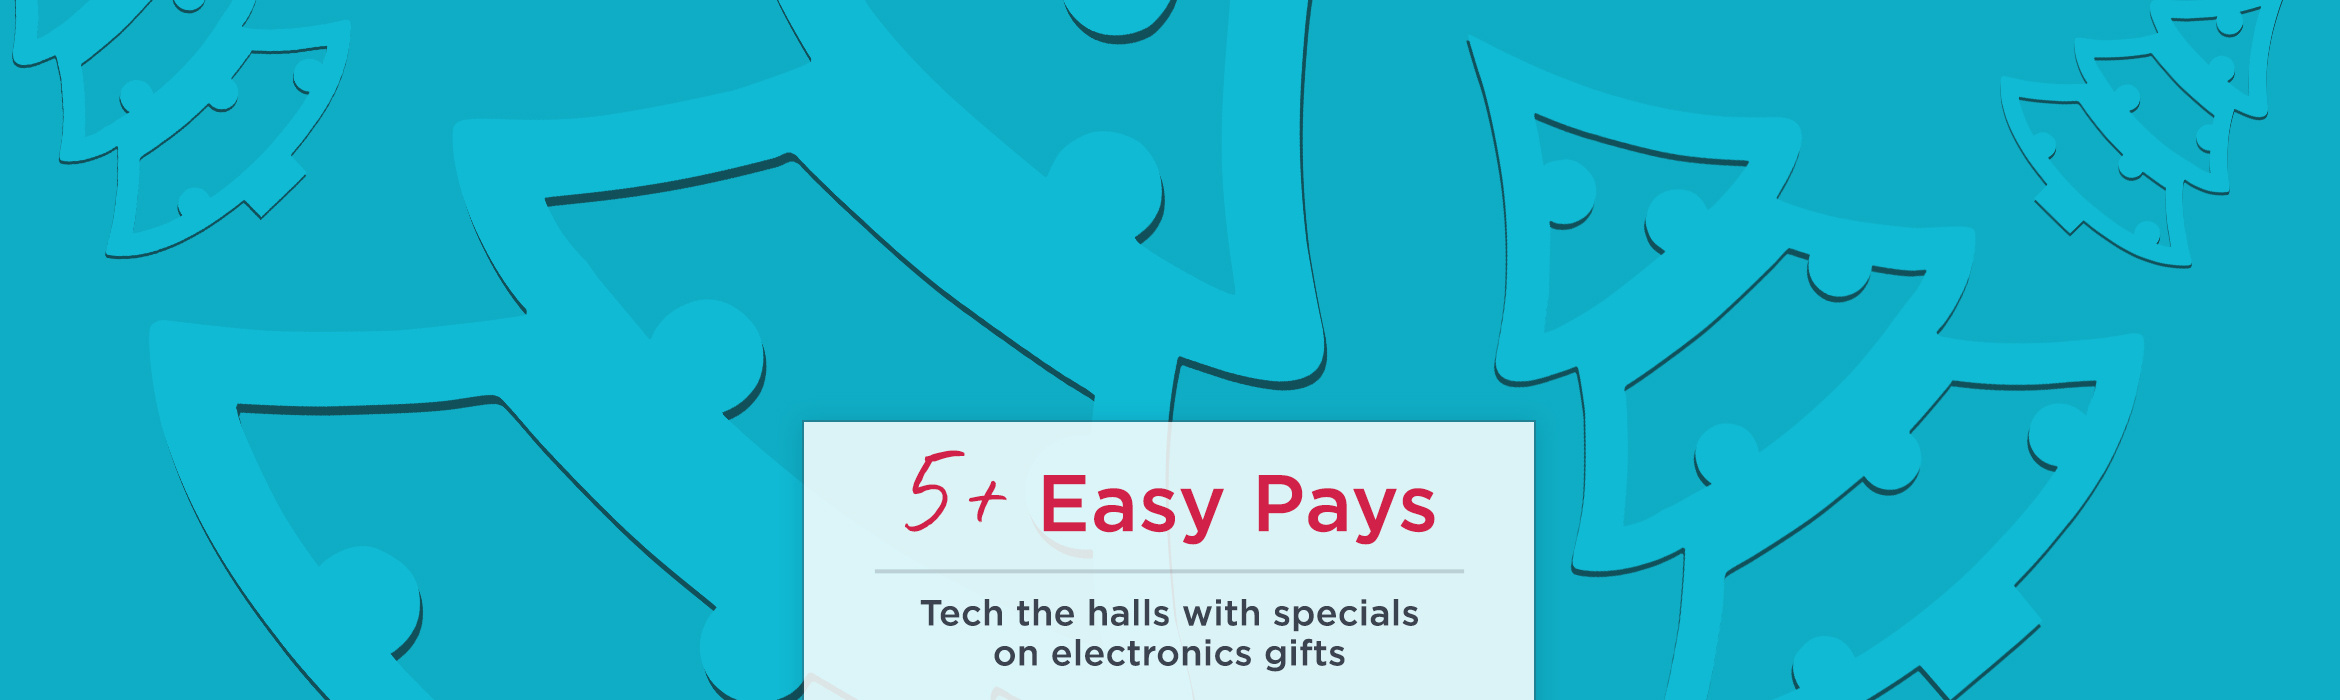 5+ Easy Pays - Tech the halls with specials on electronics gifts